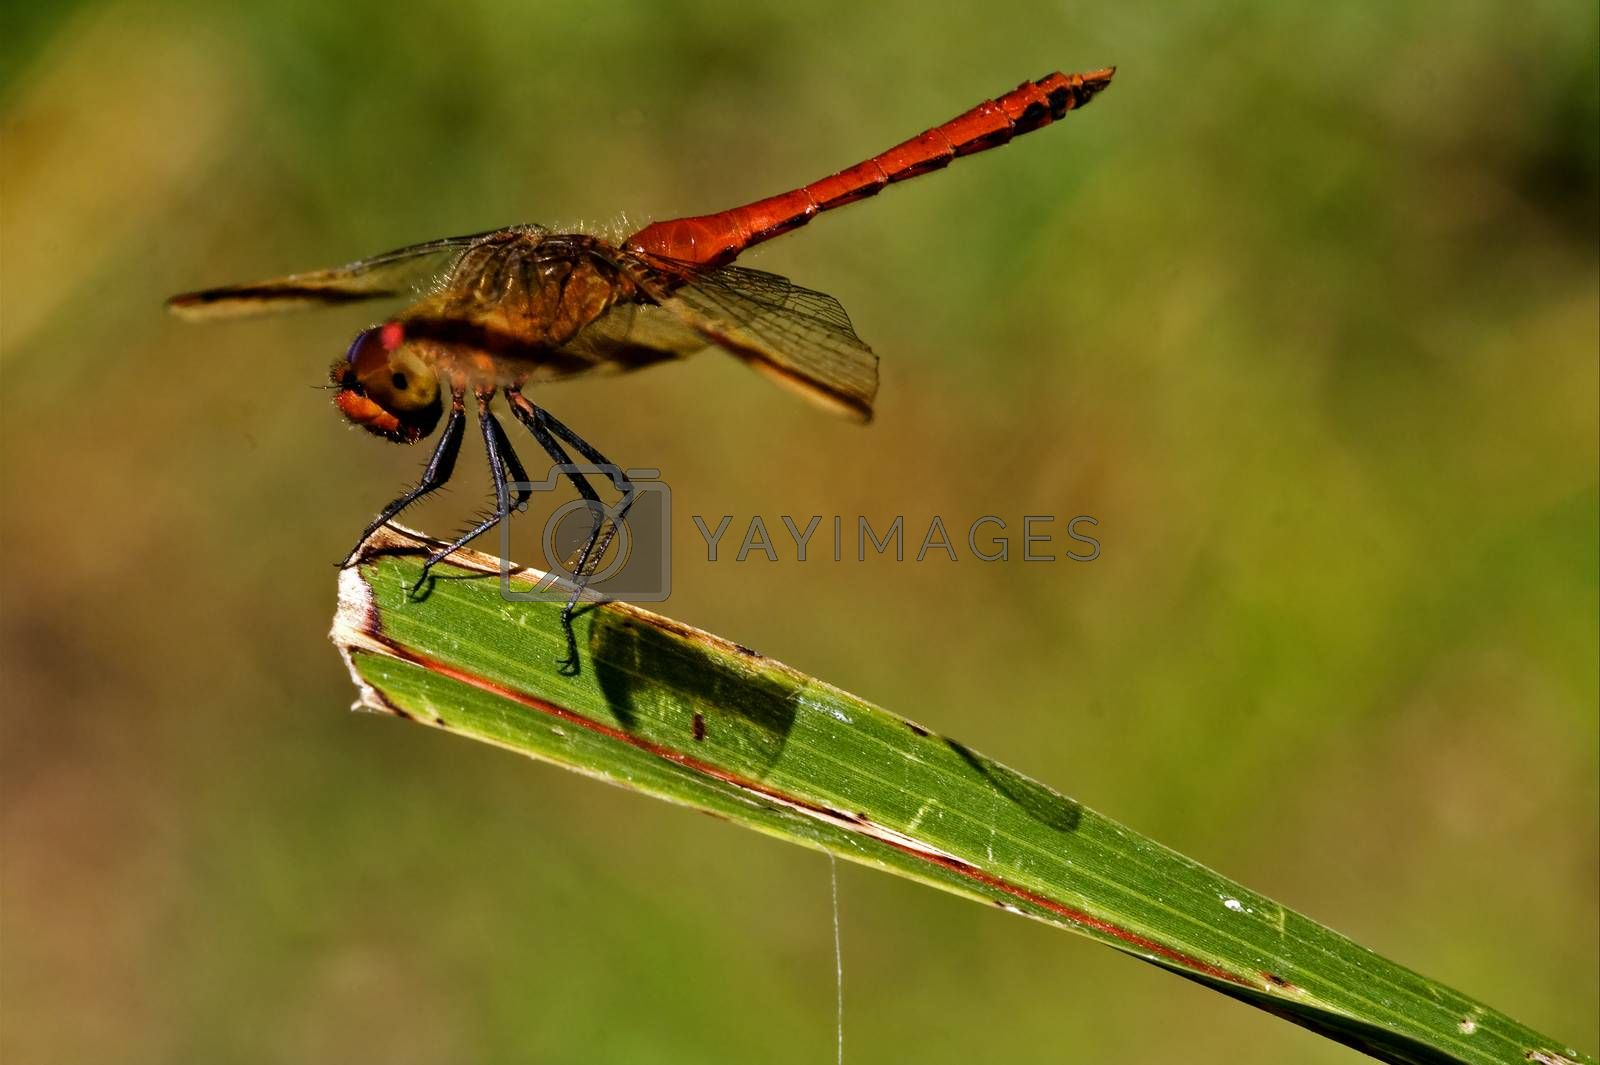 Royalty free image of red dragonfly on a piece of leaf   by lkpro